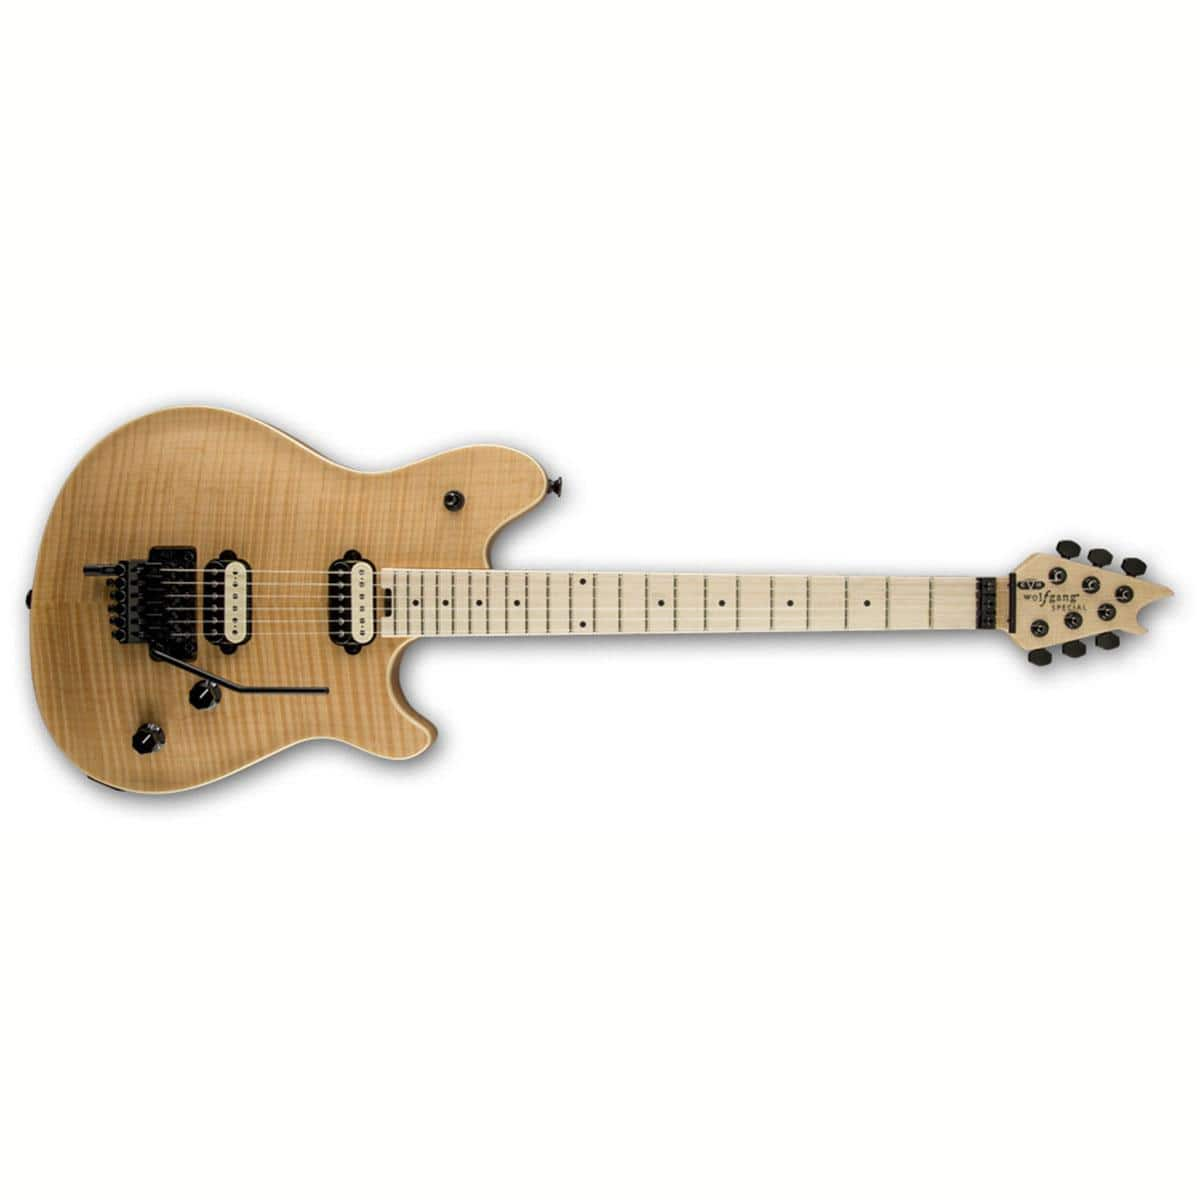 EVH Wolfgang Special Electric Guitar (natural) $850 + free shipping